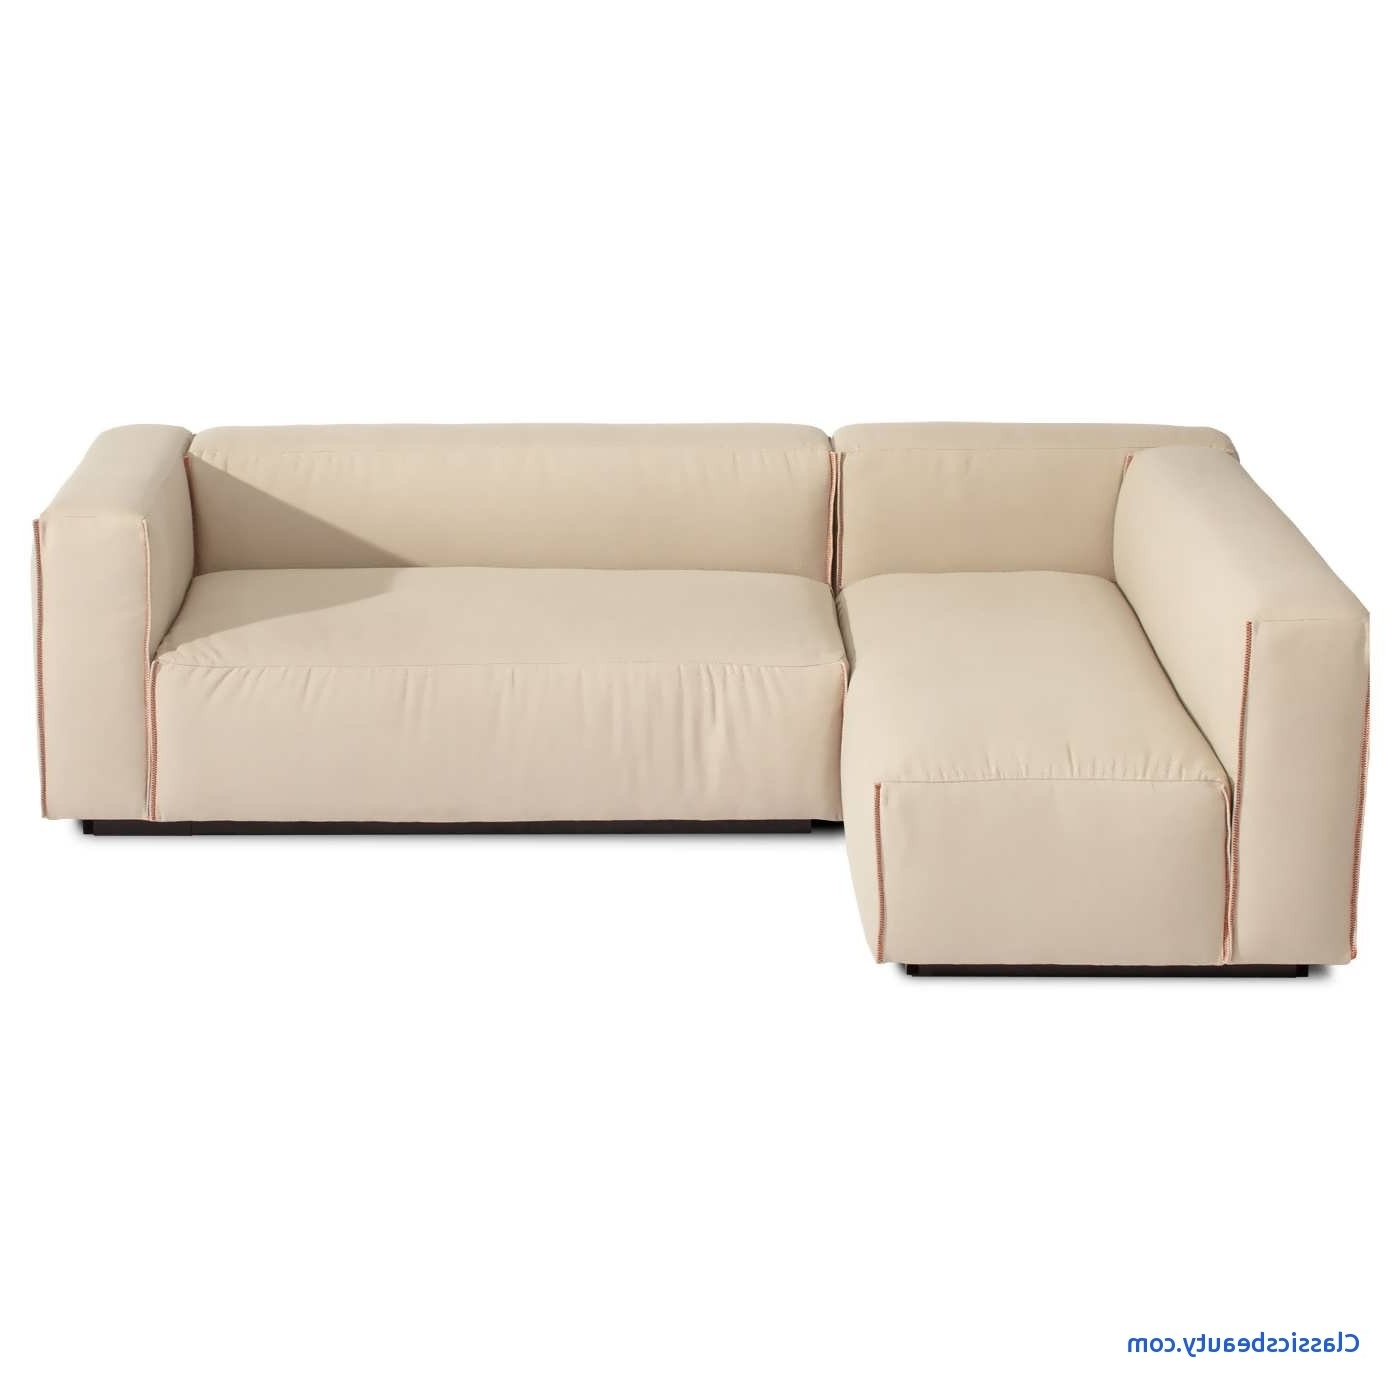 Small Sofas Elegant Sofa Corner Sofa Sectional Sleeper Sofa Chaise Regarding Widely Used Small Sofa Chaises (View 9 of 15)